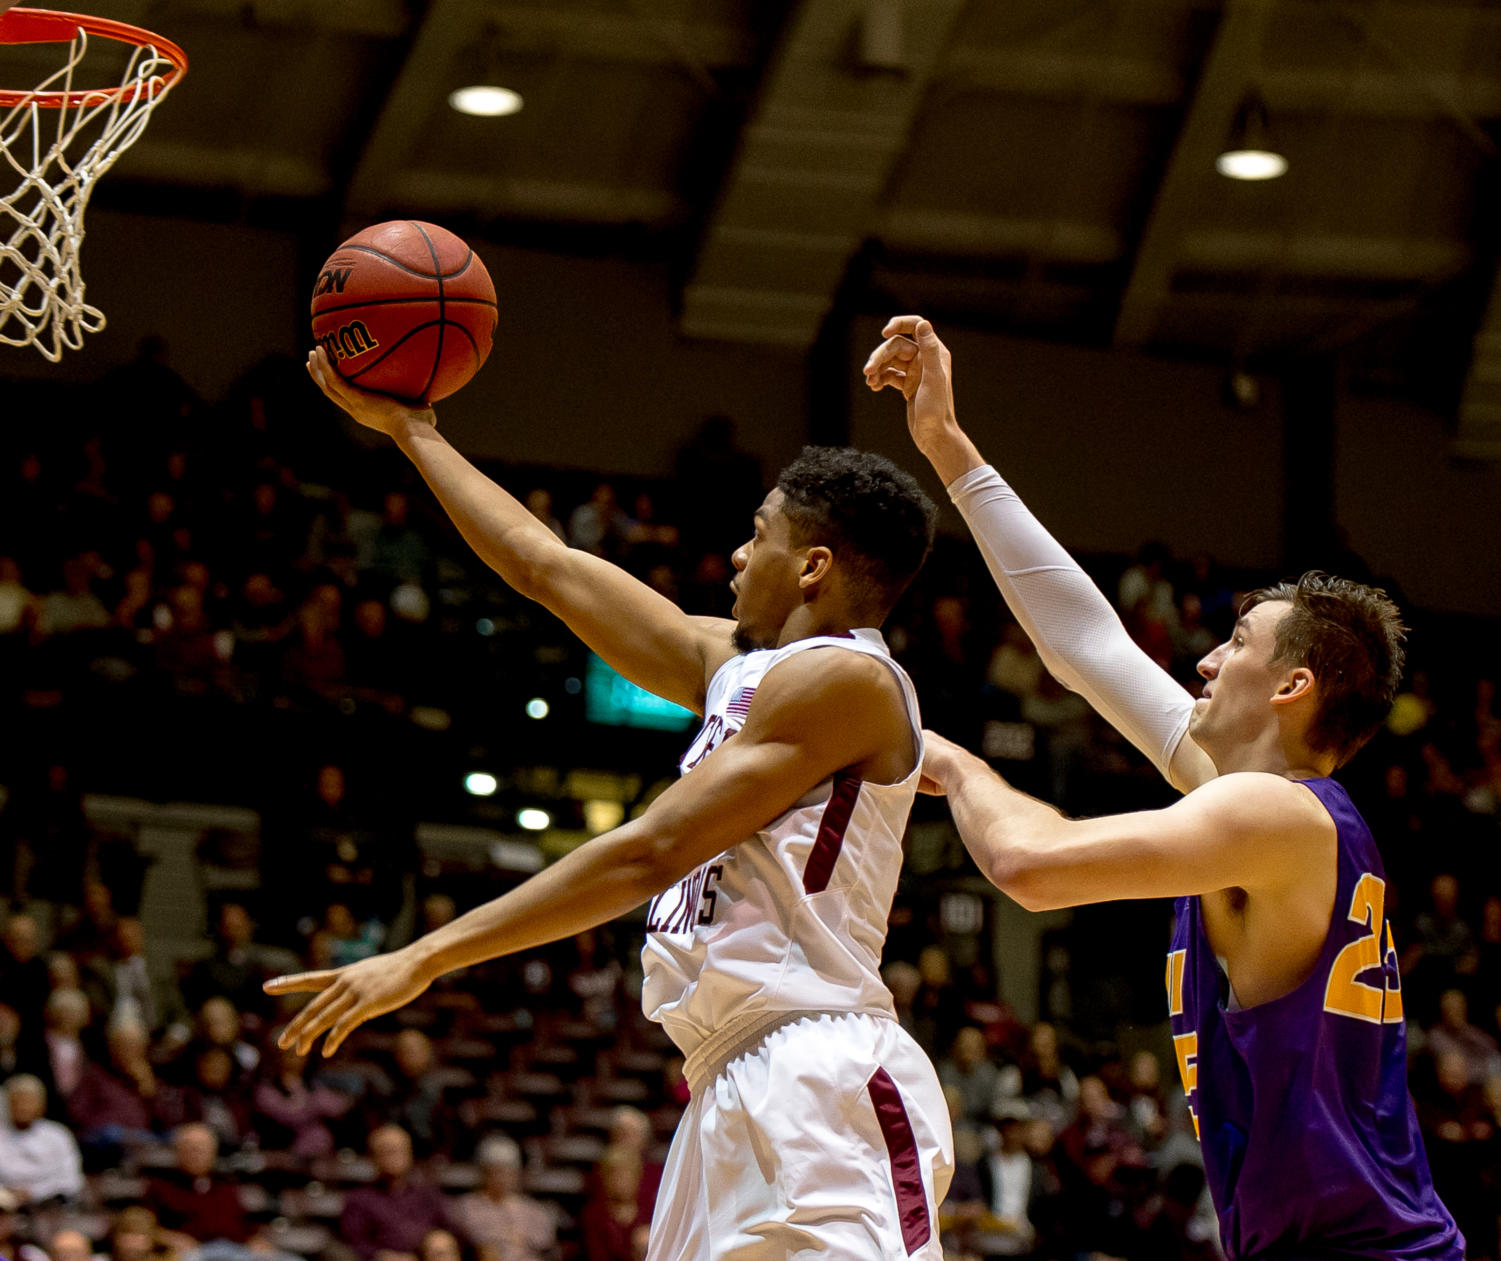 Sophomore+guard+Aaron+Cook+goes+for+a+basket+Sunday%2C+Jan.+21%2C+2018%2C+during+the+Salukis%27+64-53+victory+over+the+University+of+Northern+Iowa+Panthers+at+SIU+Arena.+%28Brian+Munoz+%7C+%40BrianMMunoz%29